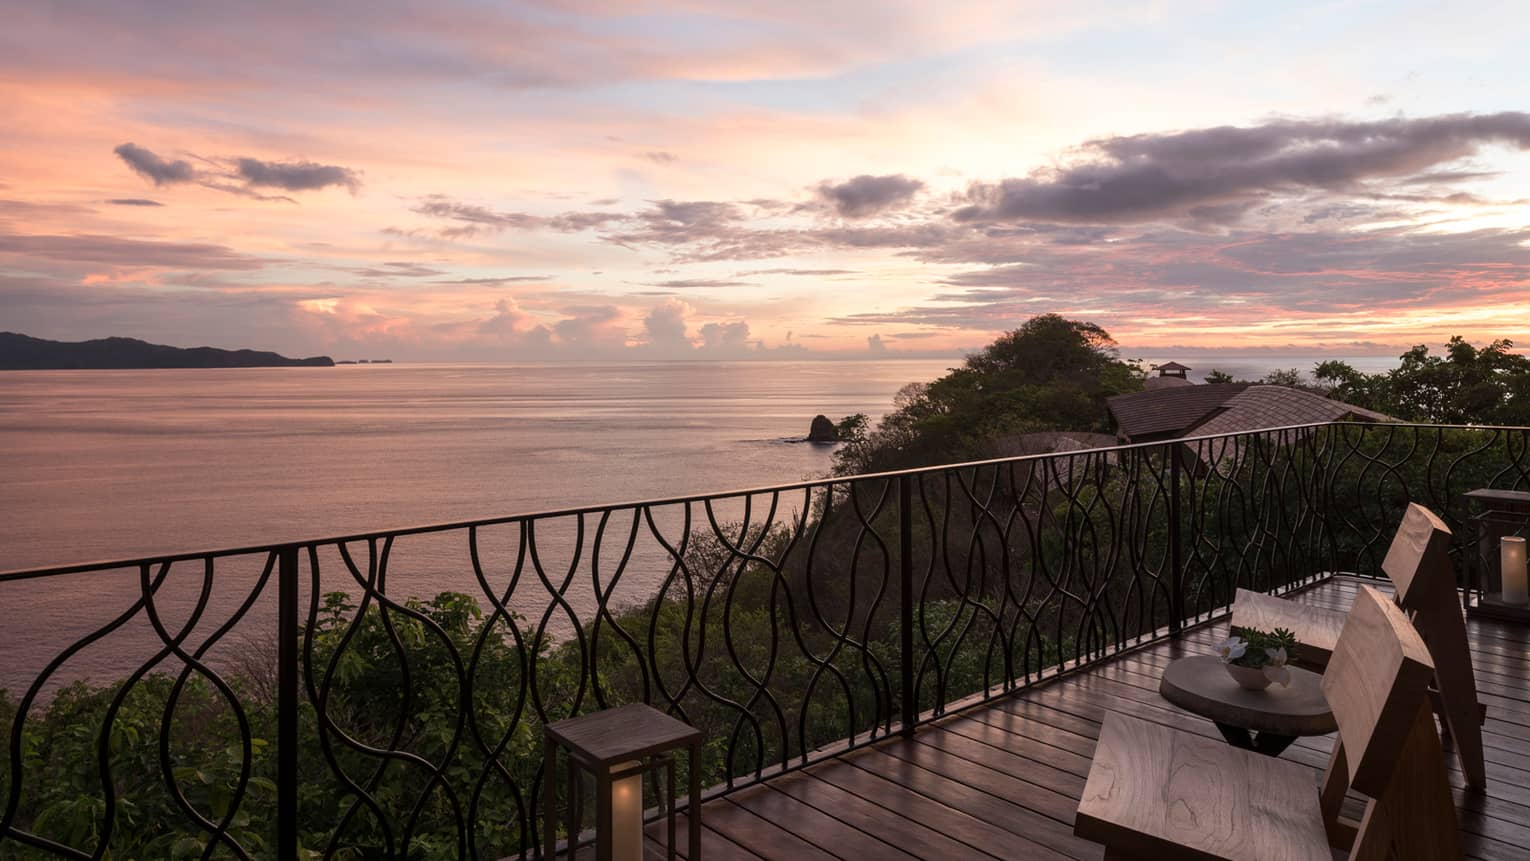 Patio chairs on wood deck with iron balcony at sunset, high above trees and ocean